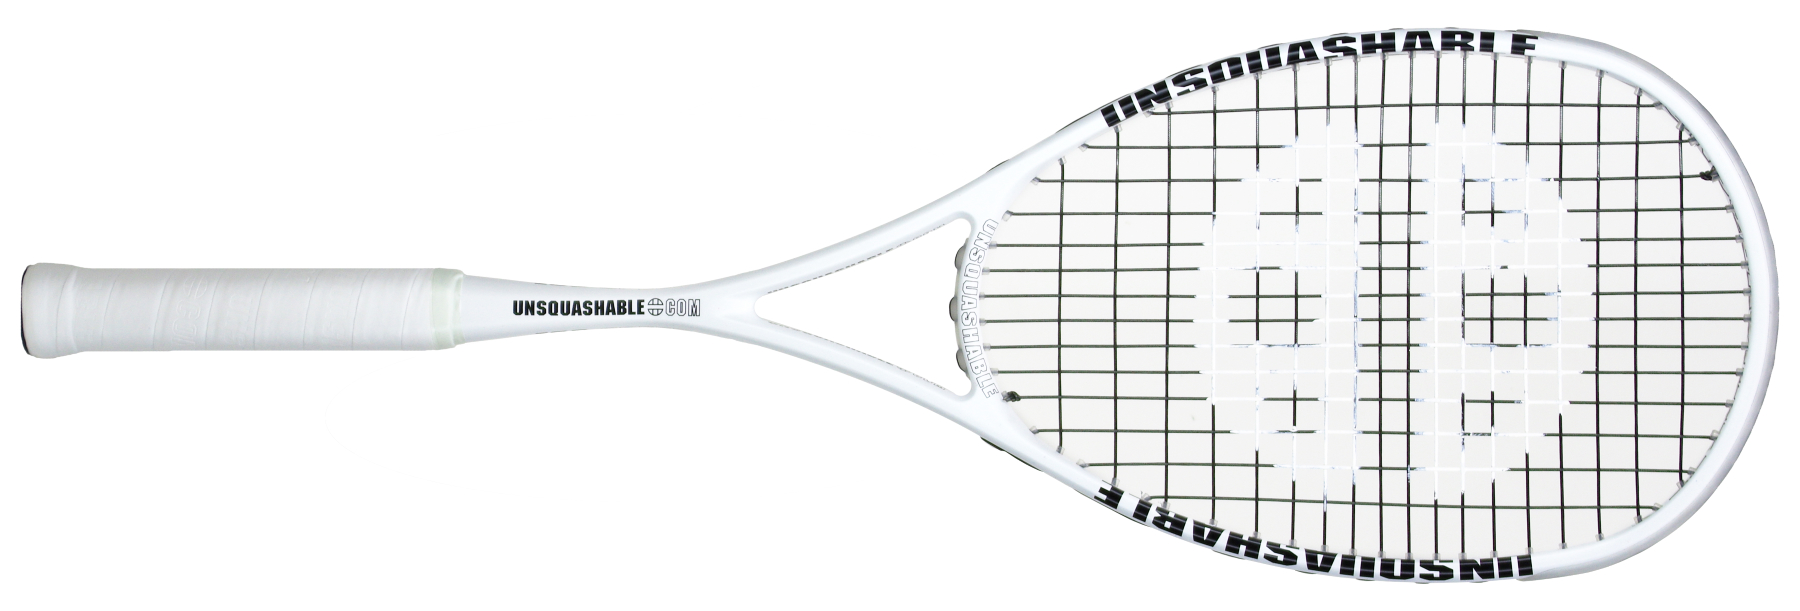 ISO-SPEED racket